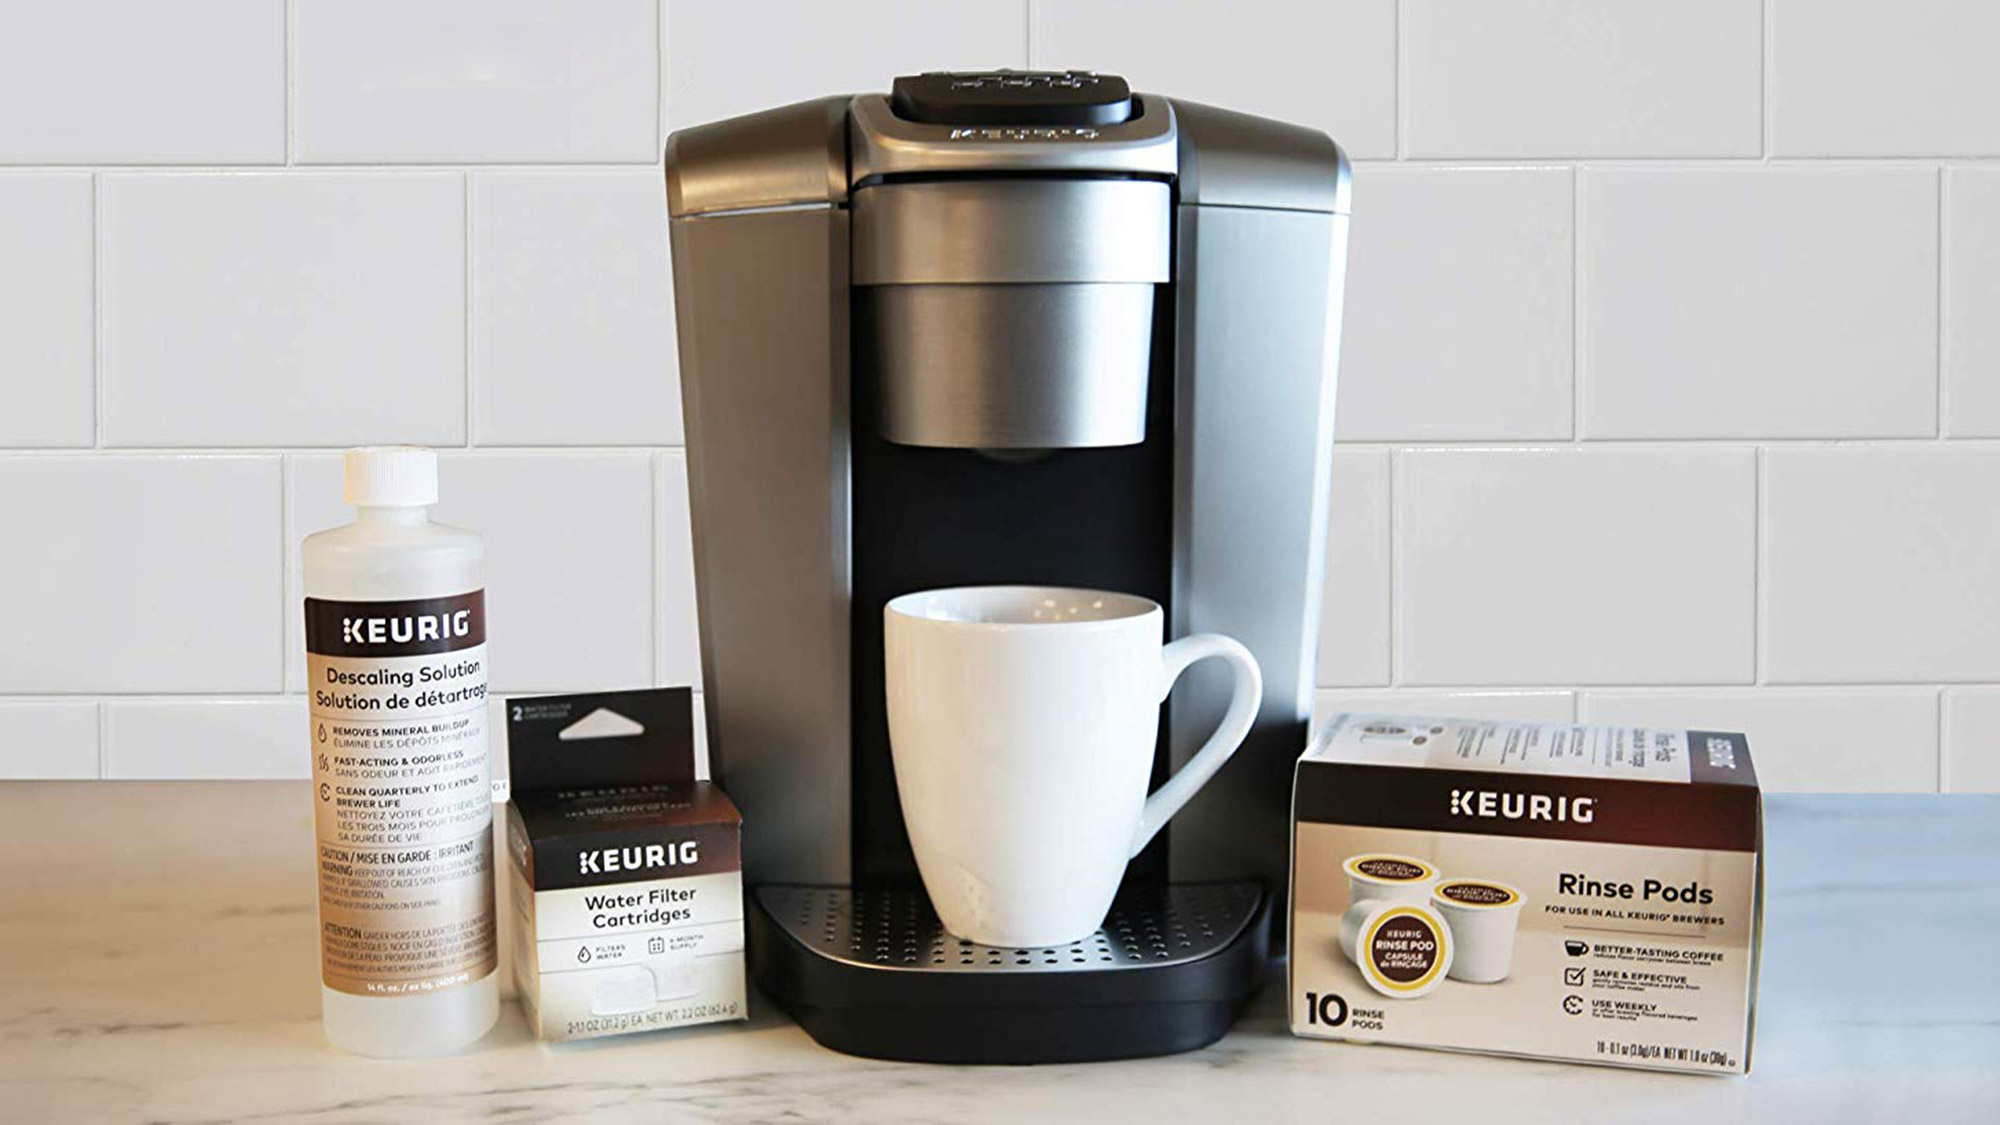 How to clean a Keurig coffee maker | Tom's Guide